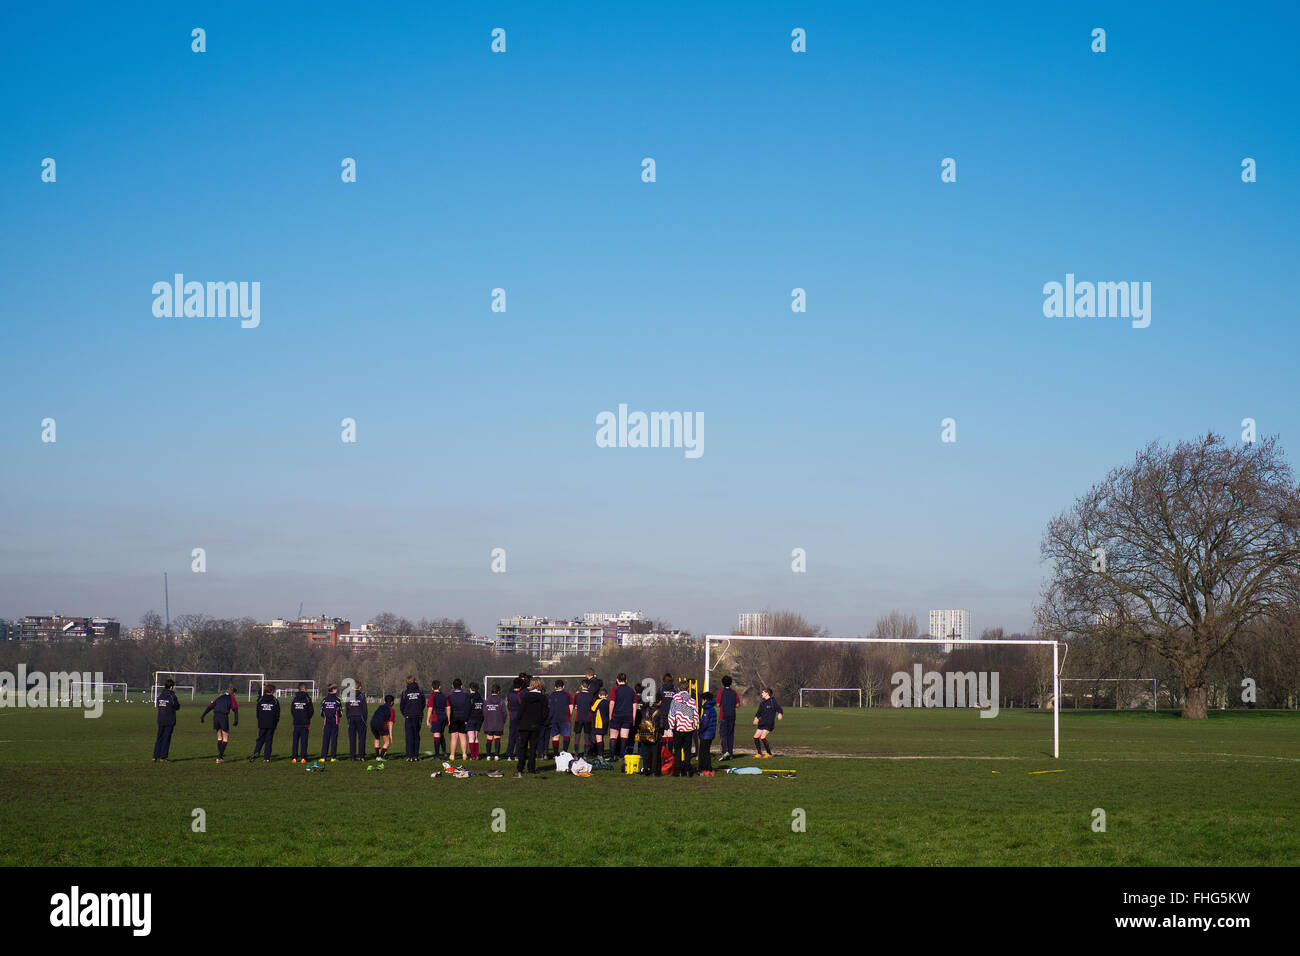 Pupils from a London Private school partake in physical activity in Regents Park in winter - Stock Image